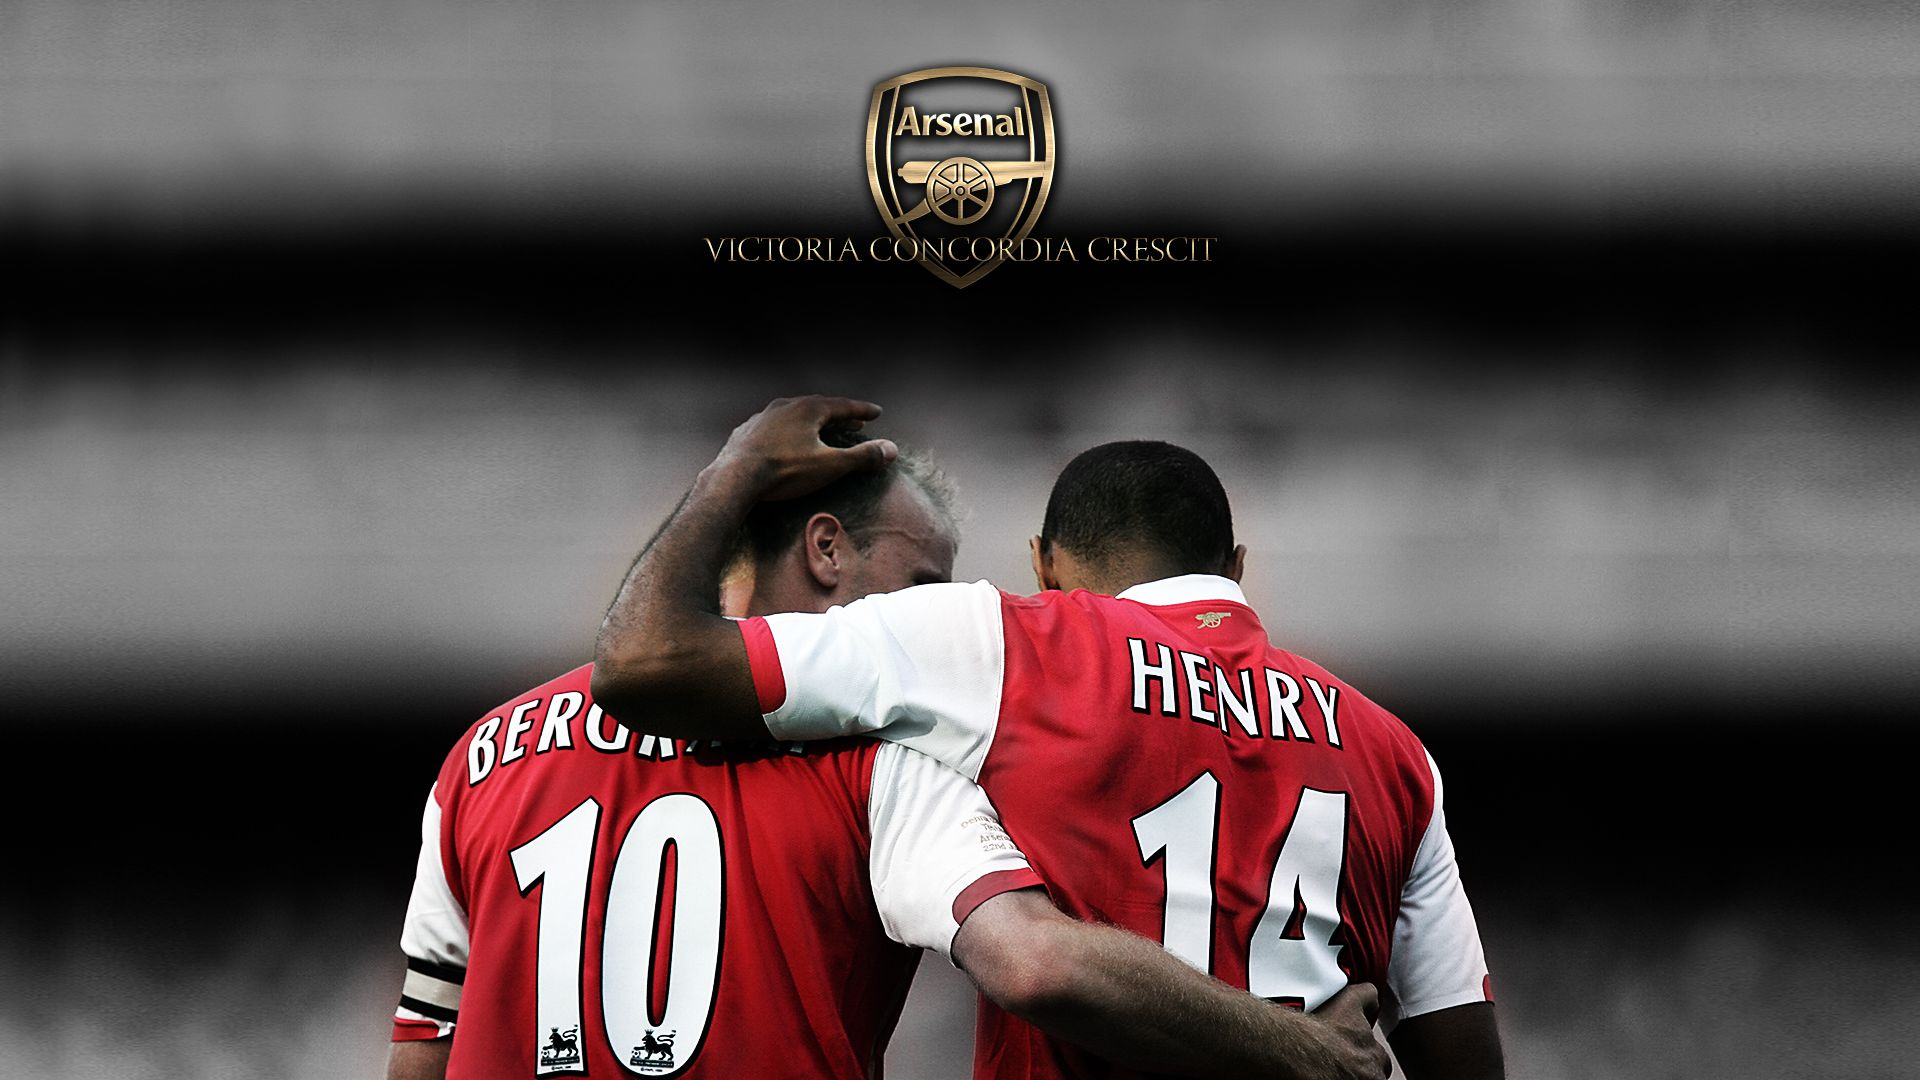 thierry henry arsenal wallpapers group